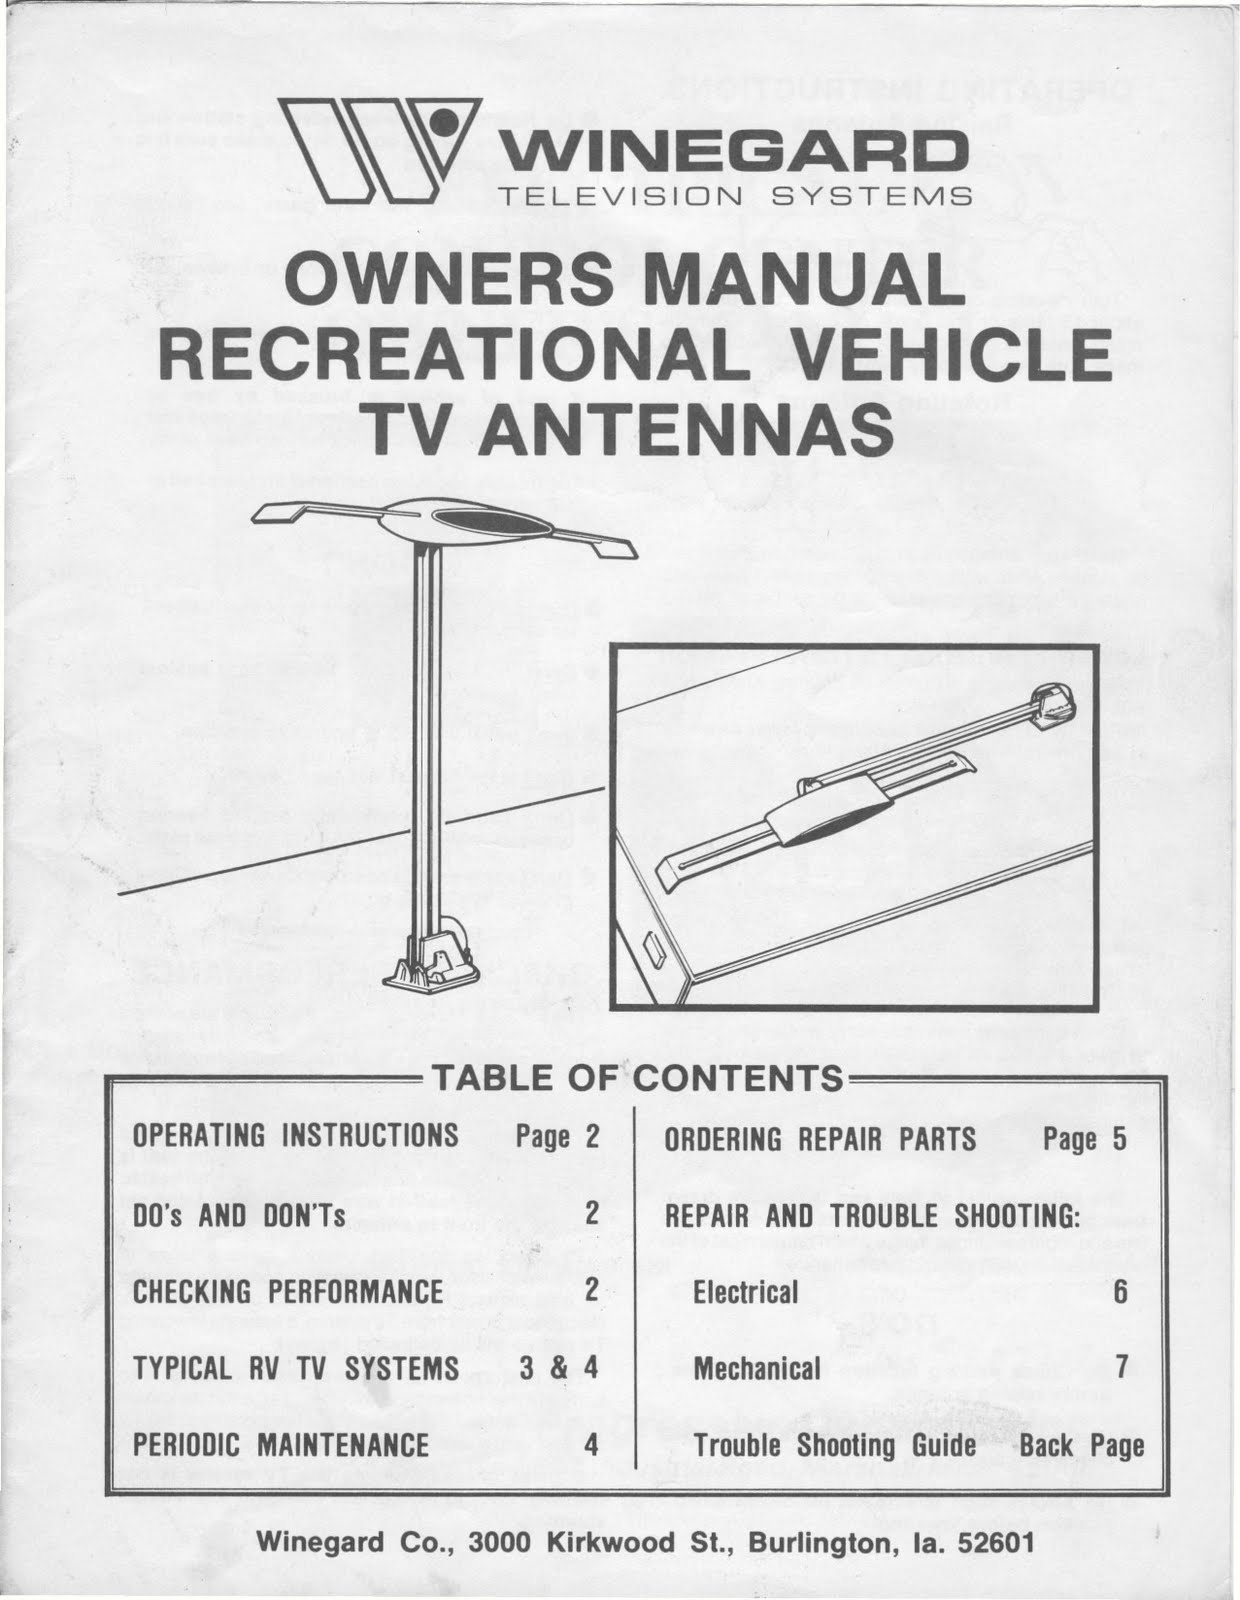 Side De Out Rv Antenna Wiring Diagram Auto Electrical Tv Cable 1983 Fleetwood Pace Arrow Owners Manuals Winegard Rh 1983fleetwoodpacearrowownersmanuals Blogspot Com Keystone